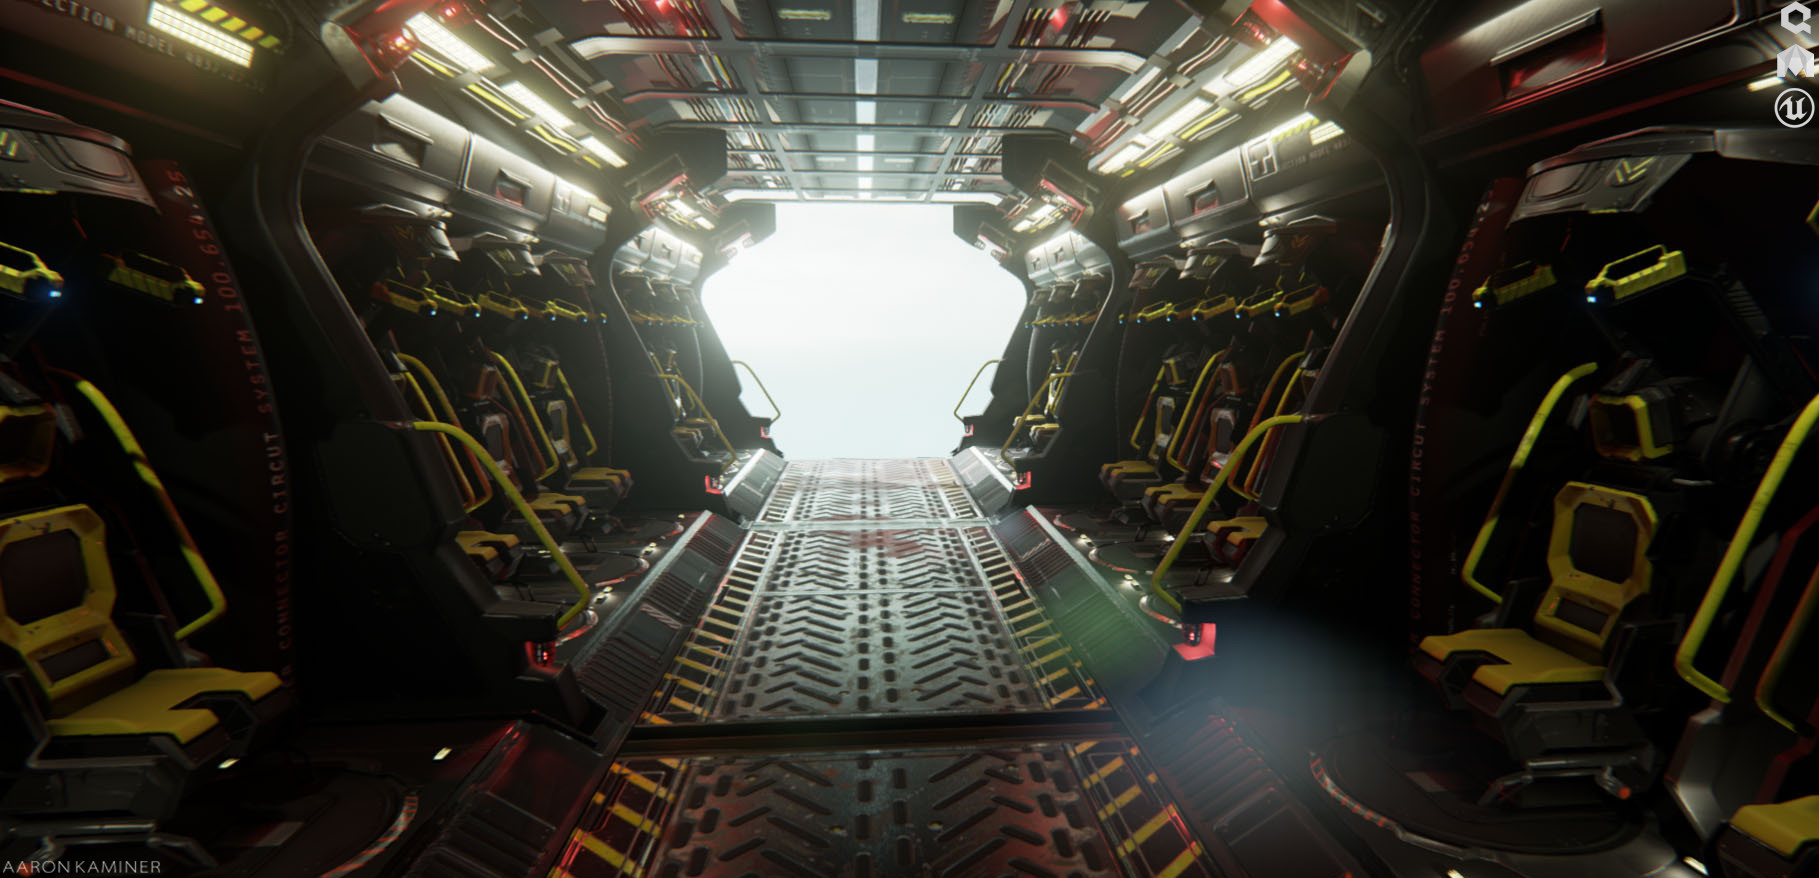 ArtStation  Drop Ship Interior Aaron Kaminer